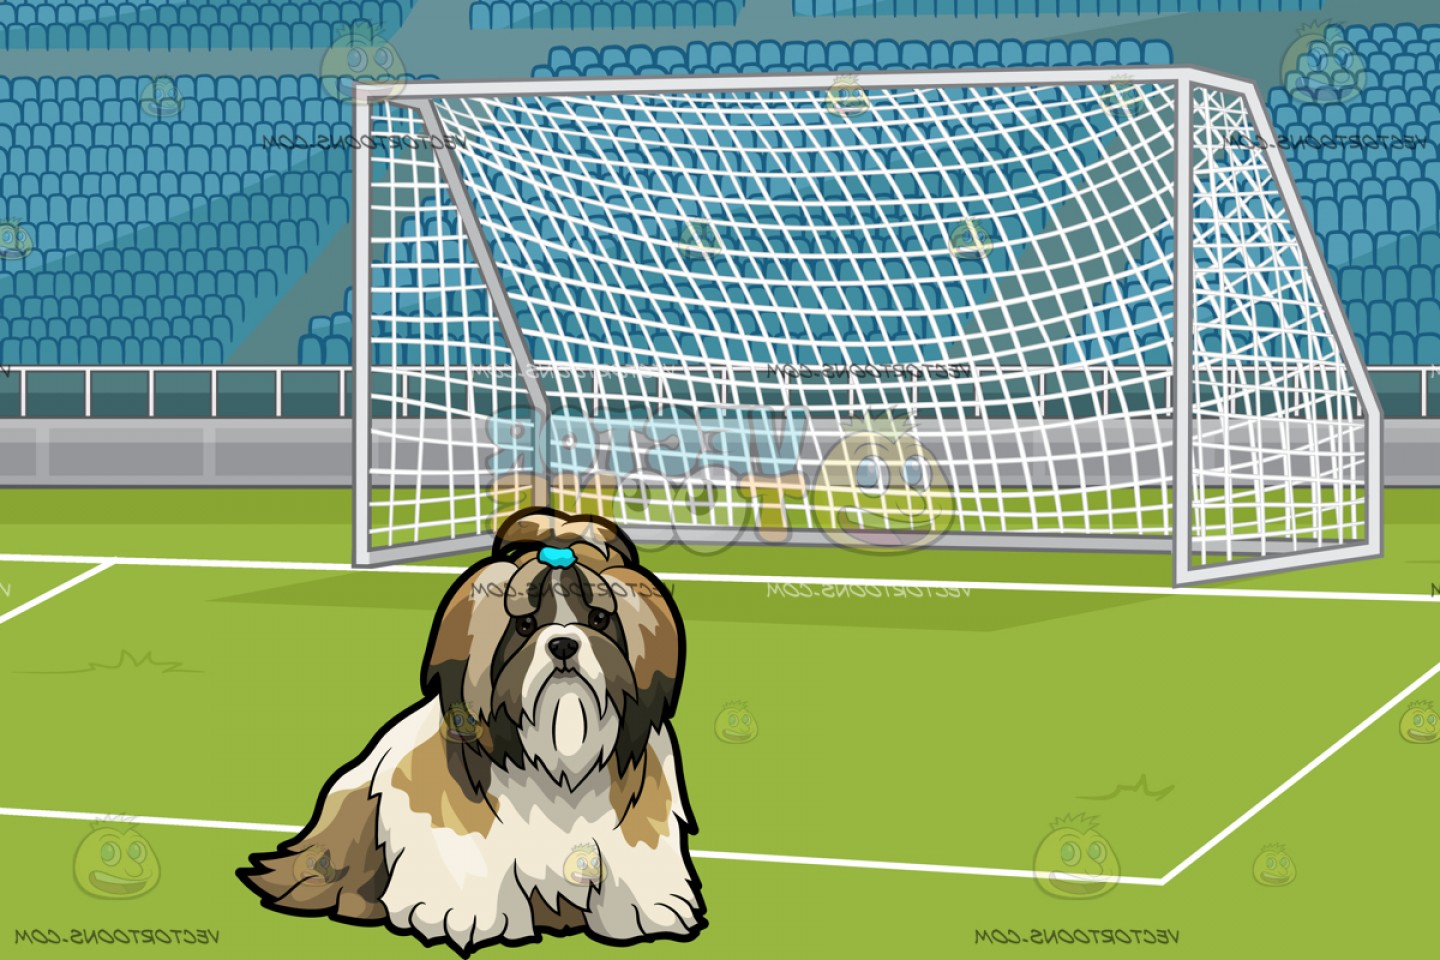 Shih Tzu Clipart-Vector: A Shih Tzu Pet Dog With A Soccer Field With Stadium Seating Background